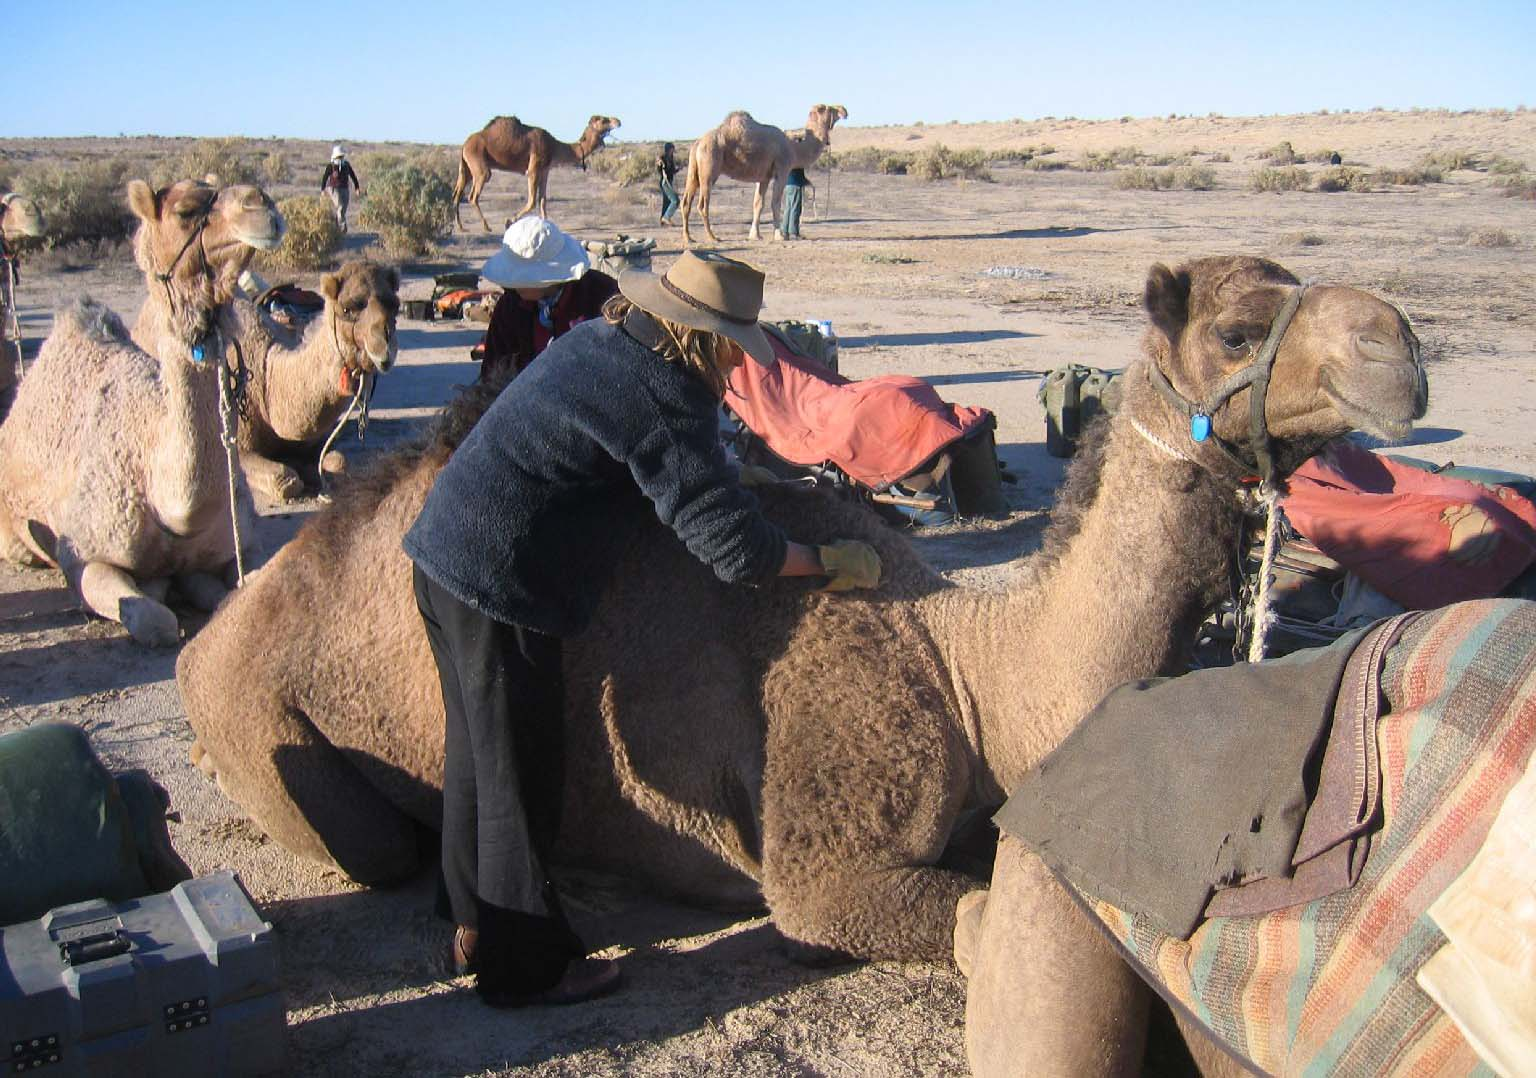 Loading the camels.